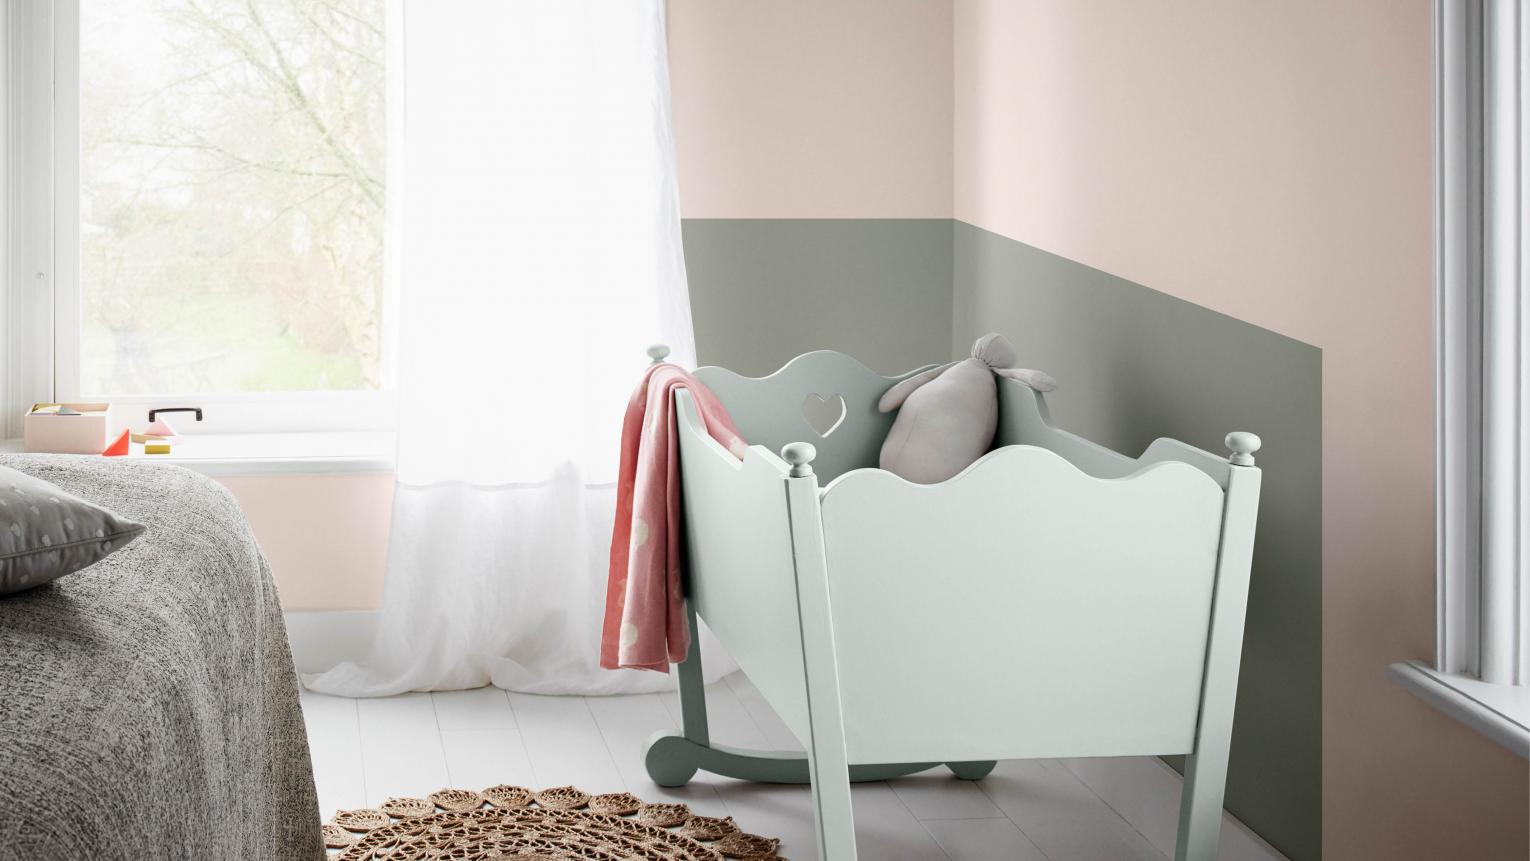 According to AkzoNobel {*} research, more than 17% of new parents transform a corner of their own bedroom into a nursery if they're short of space.